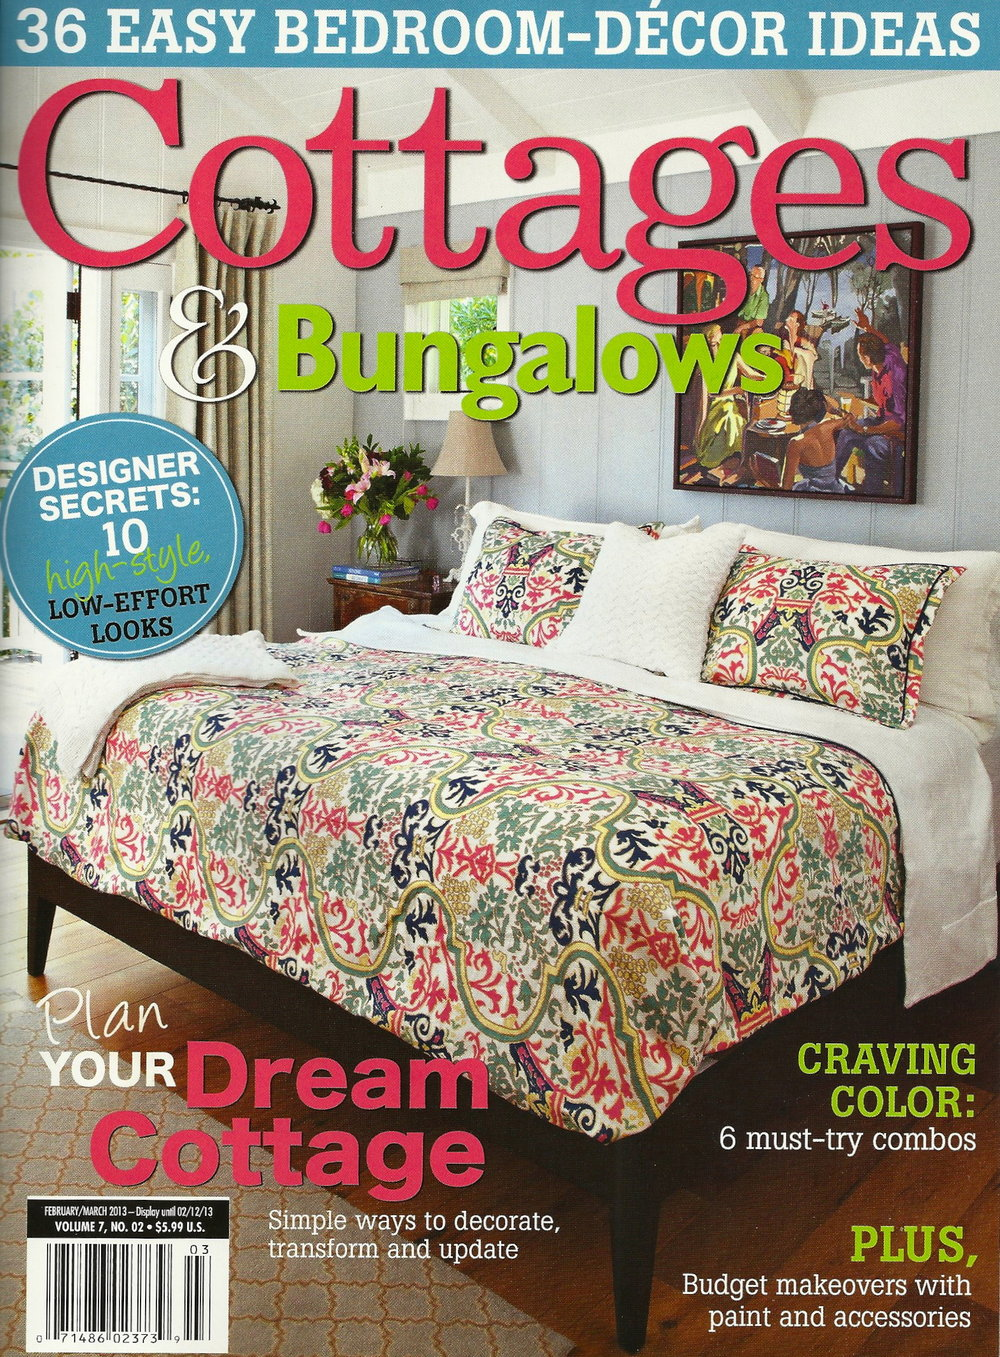 Cottages & Bungalows Feb:Mar 2013.jpg